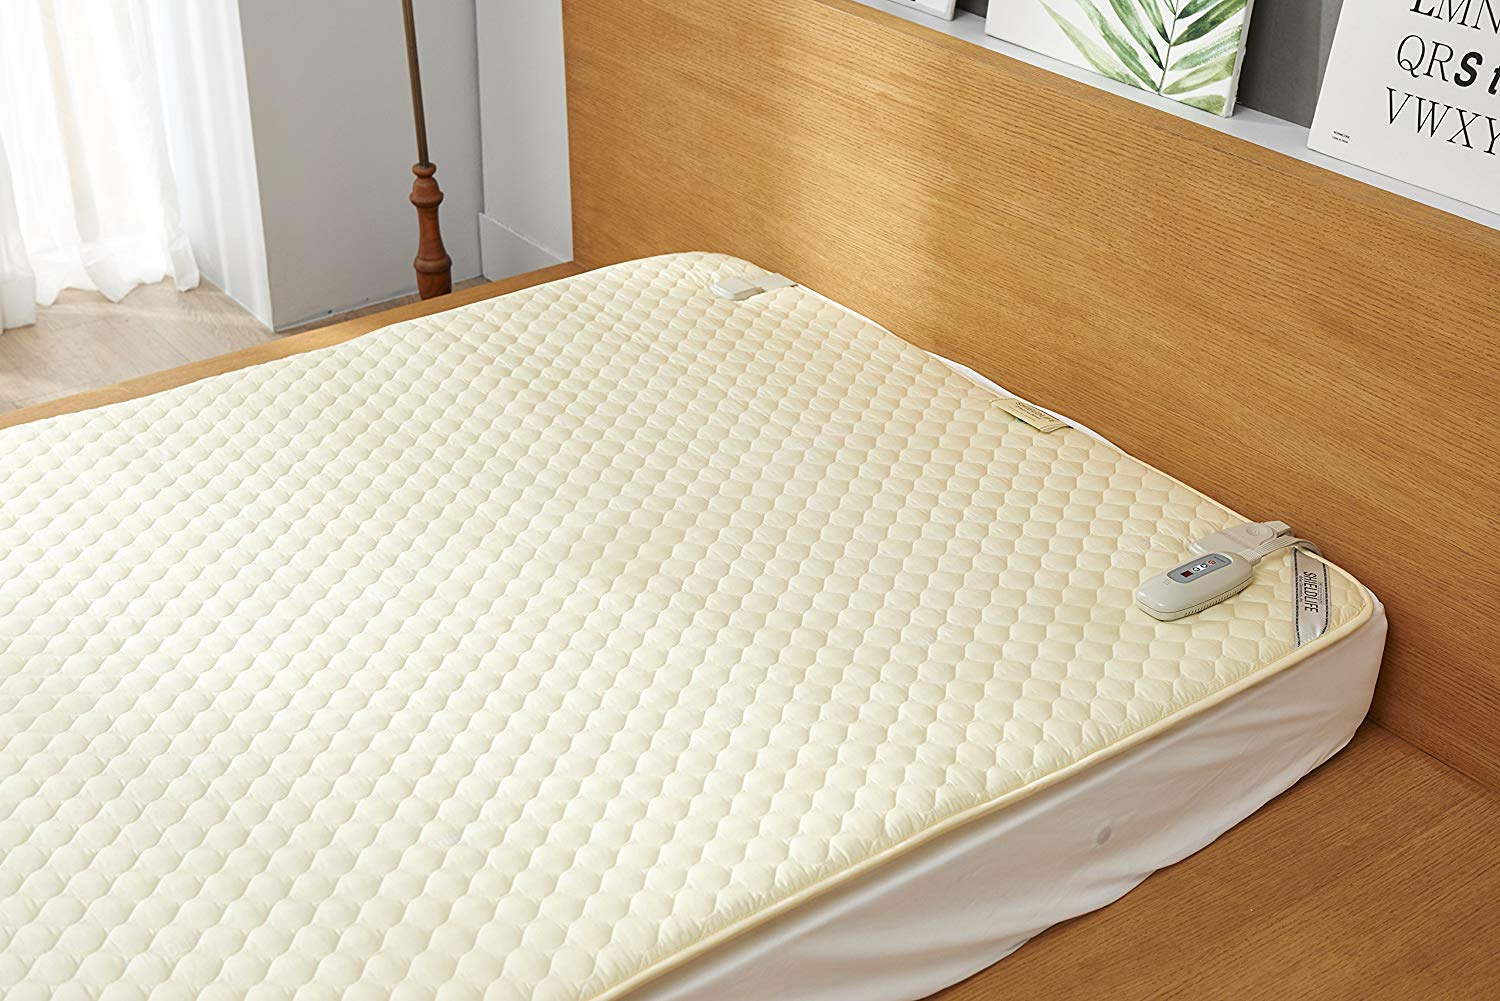 Therapad Mattress Pad One With Wellness